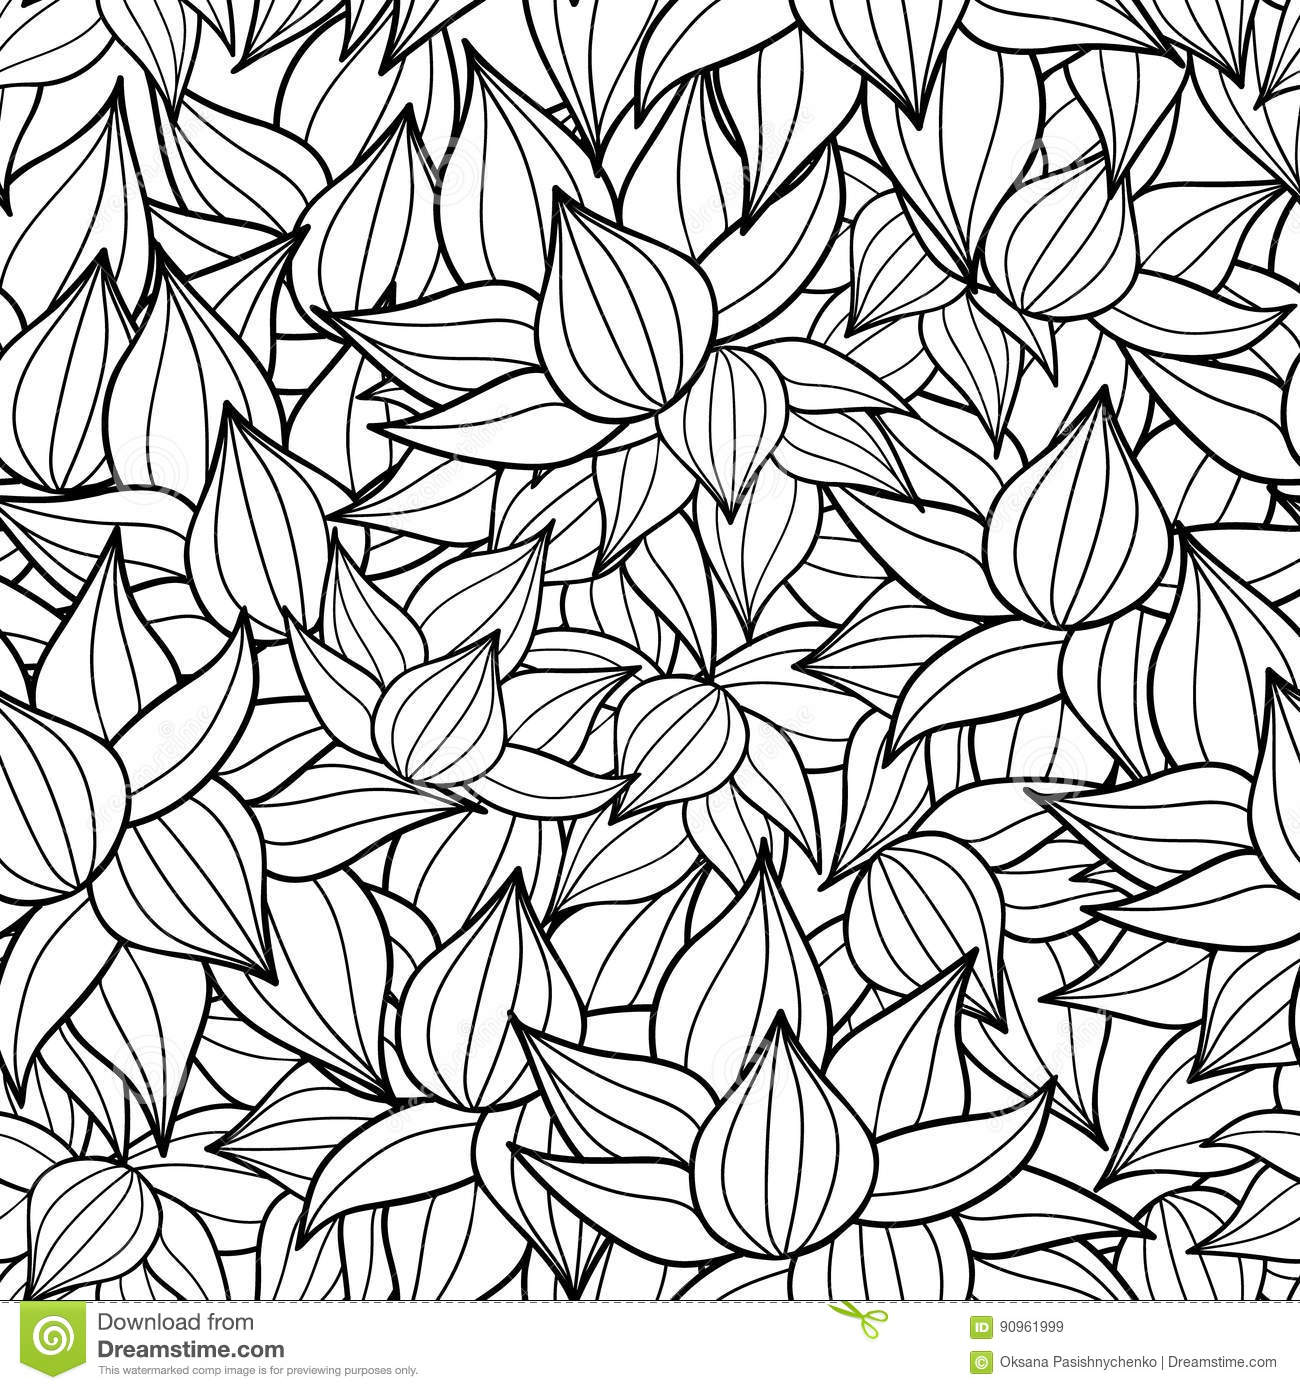 vector black drawing succulent plant texture drawing seamless Paint Texture Backgrounds vector black drawing succulent plant texture drawing seamless pattern background great for subtle botanical